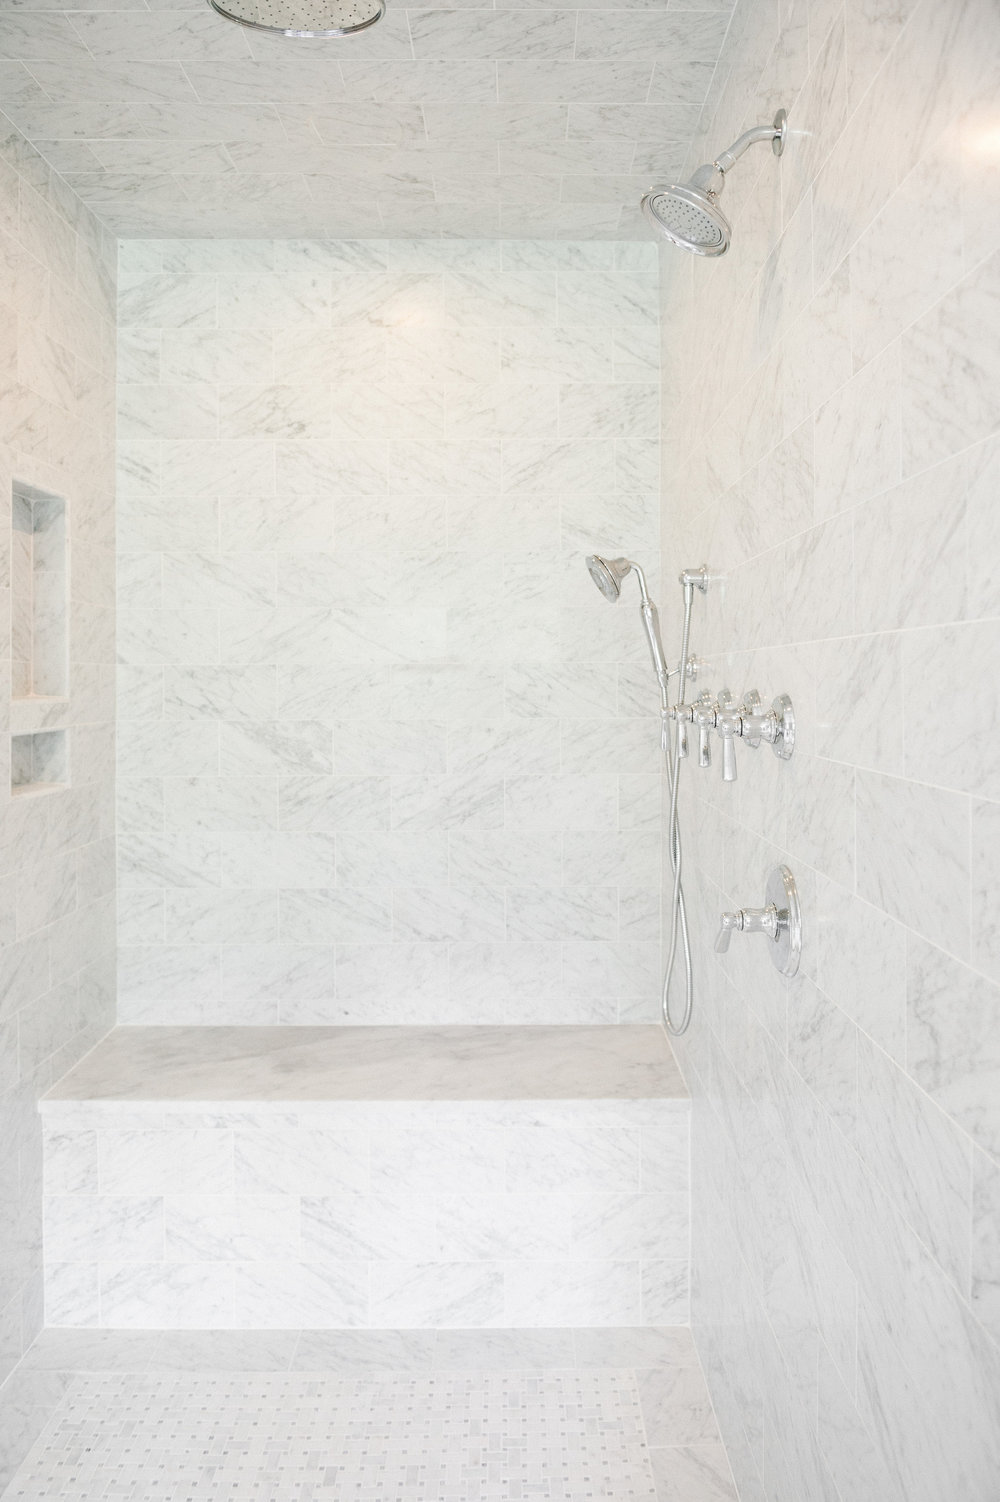 Marble shower interior with shower head, shower hose, and bench